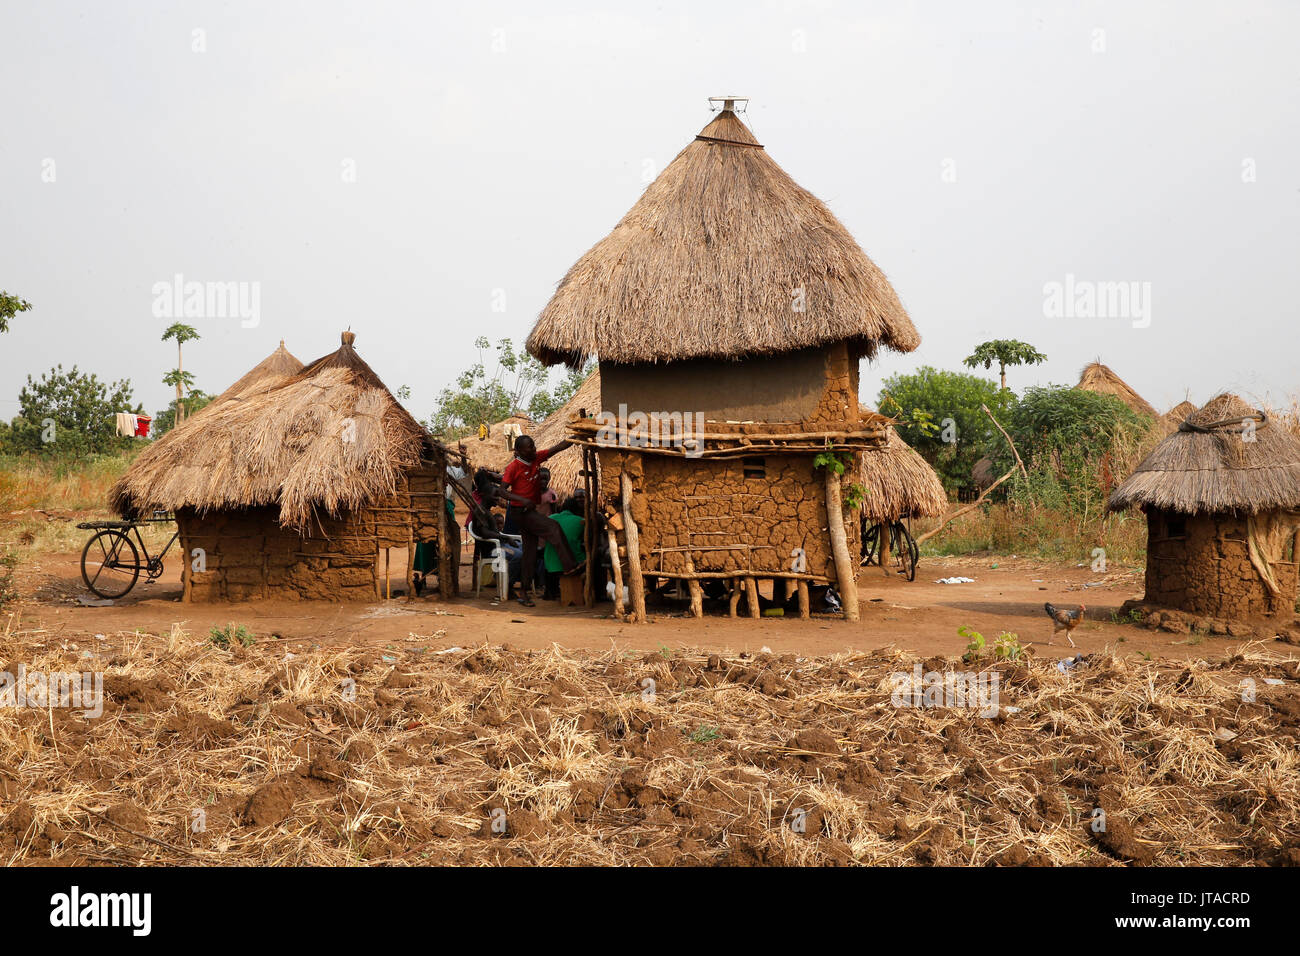 Ugandan village, Uganda, Africa Stock Photo